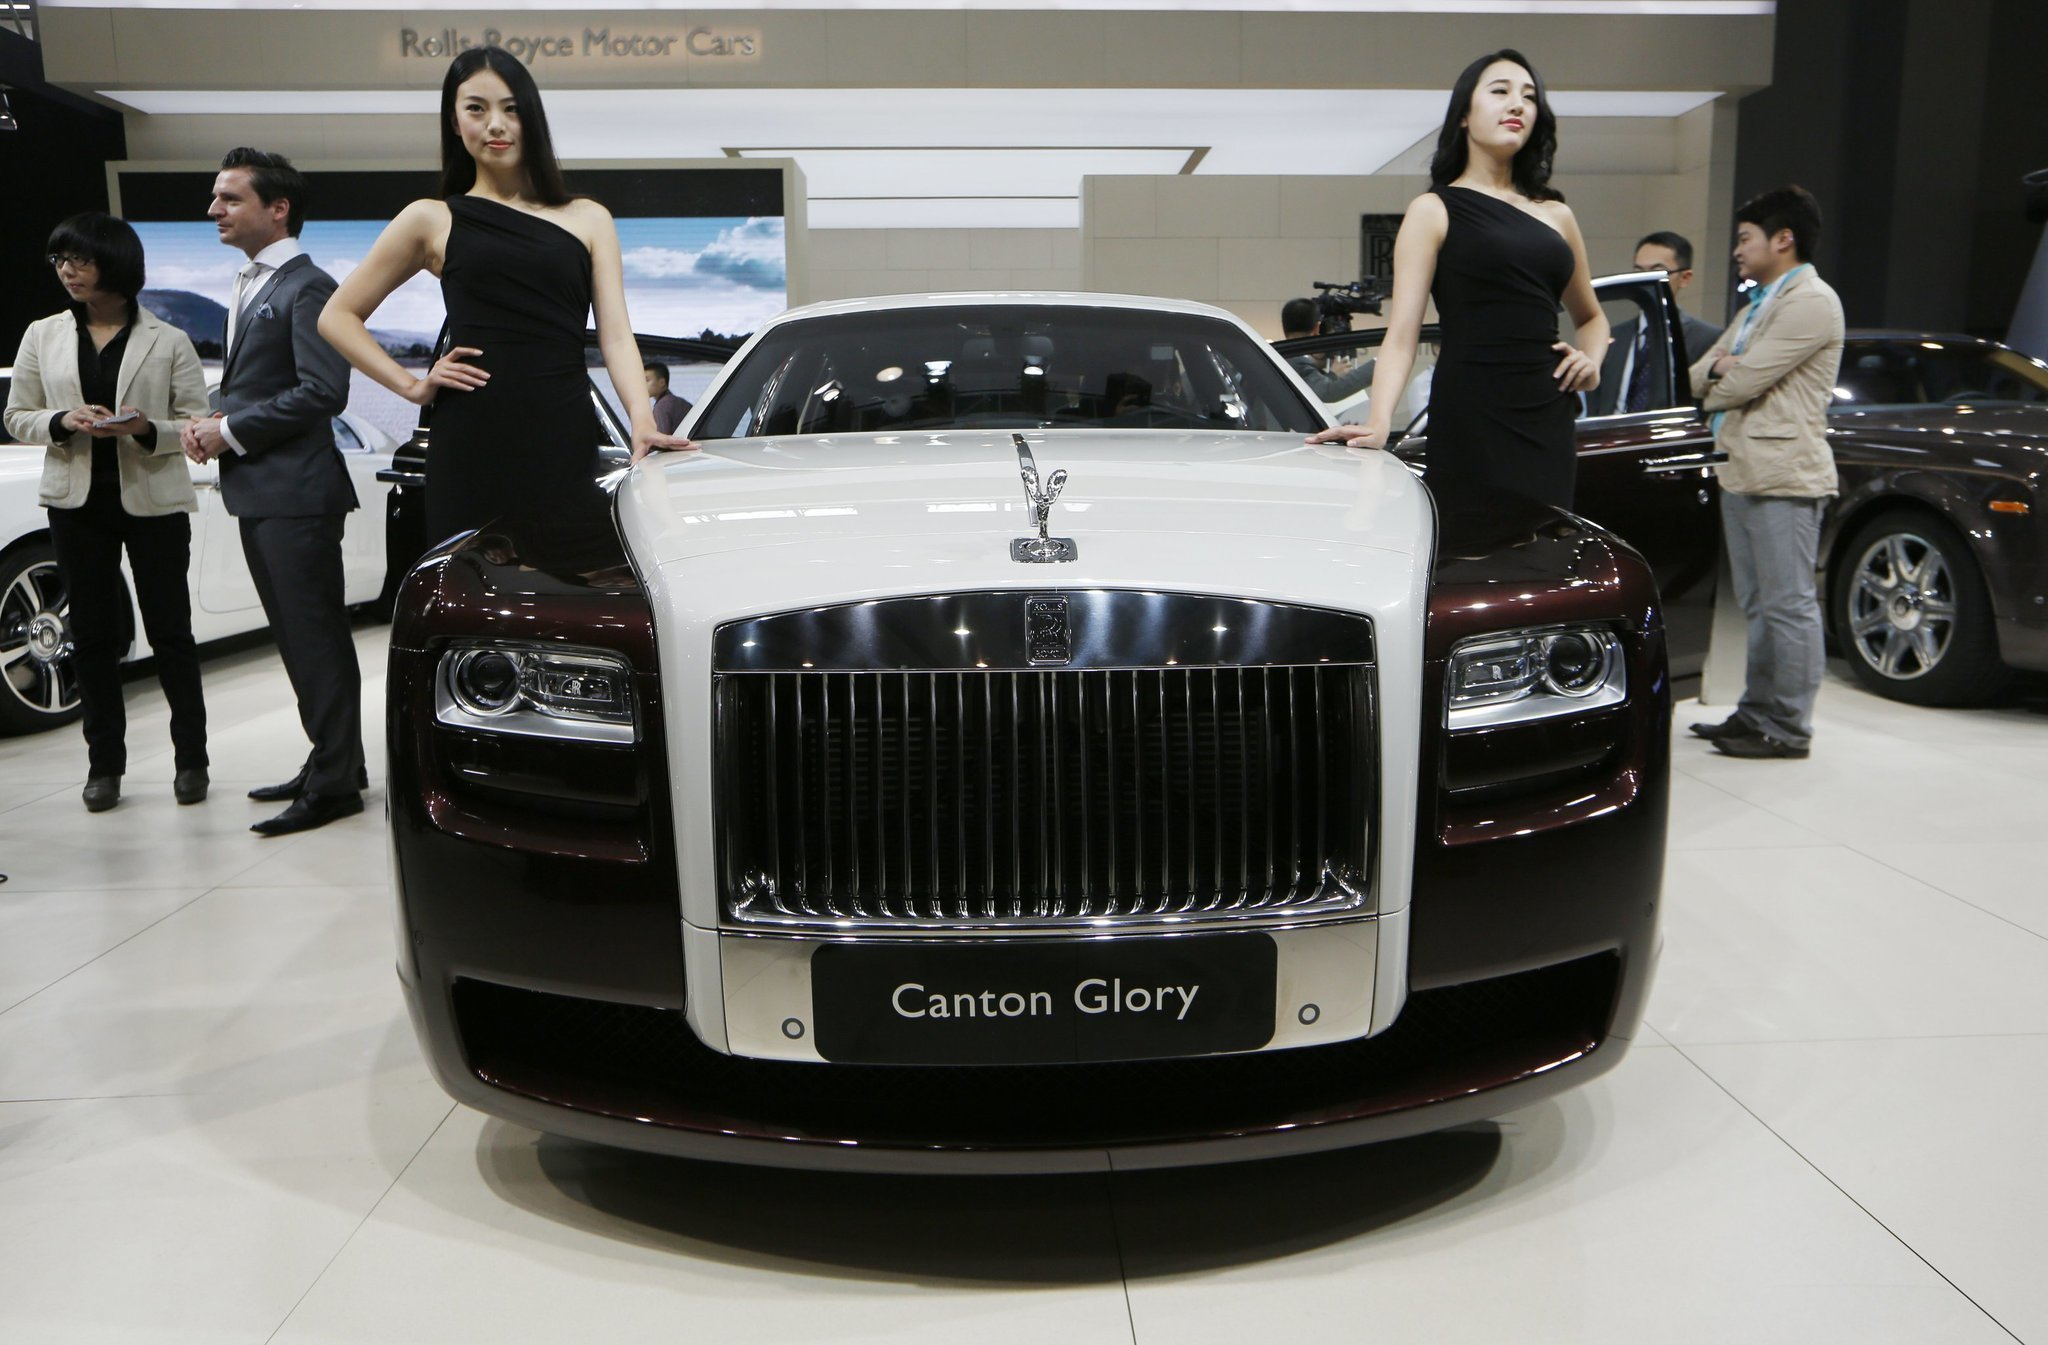 Luxury Rolls-Royce car sales soar worldwide - The San Diego Union ...